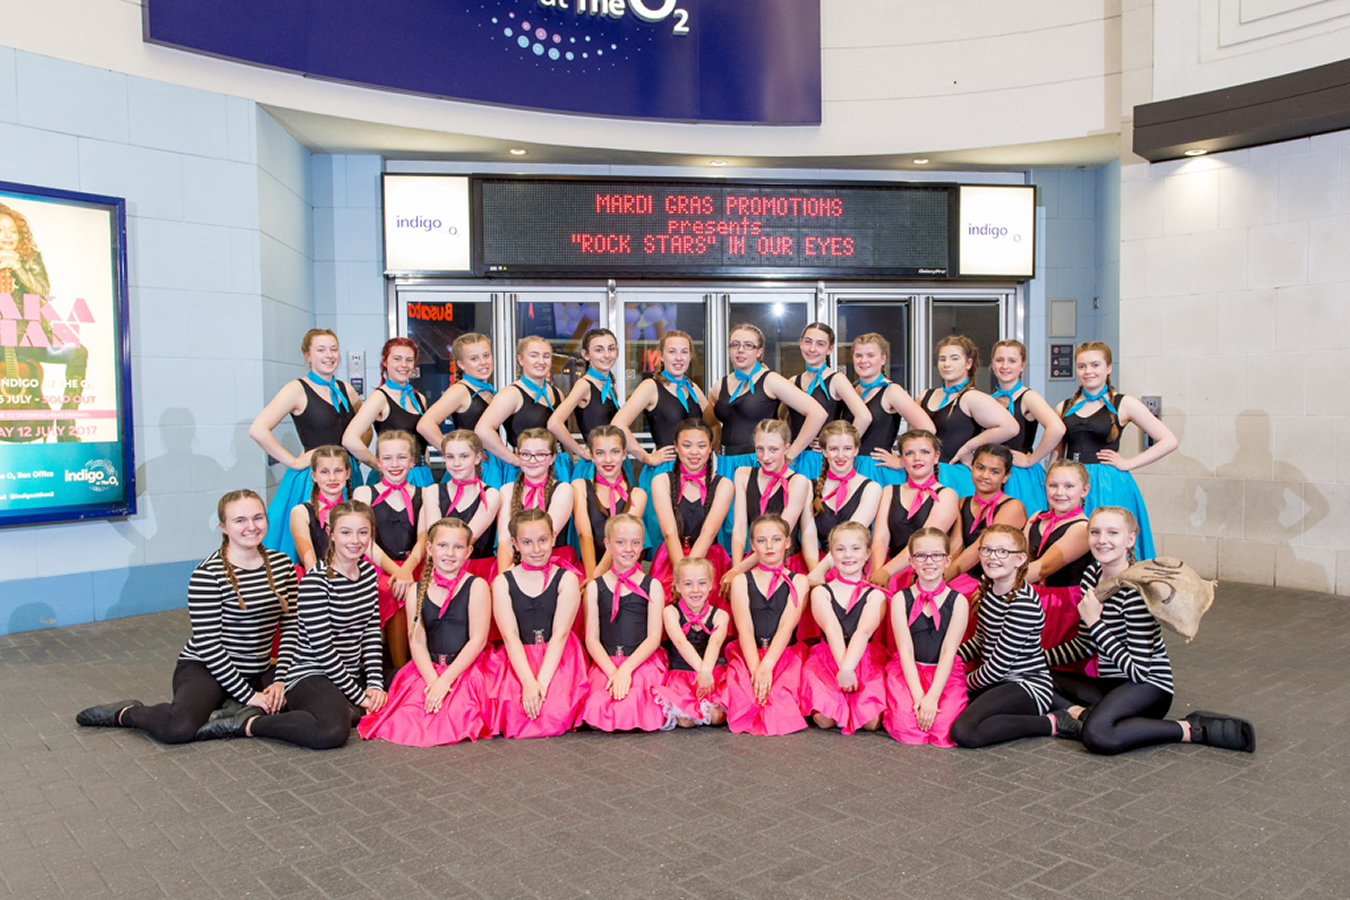 June 2017 - The CJs Performers - At the O2